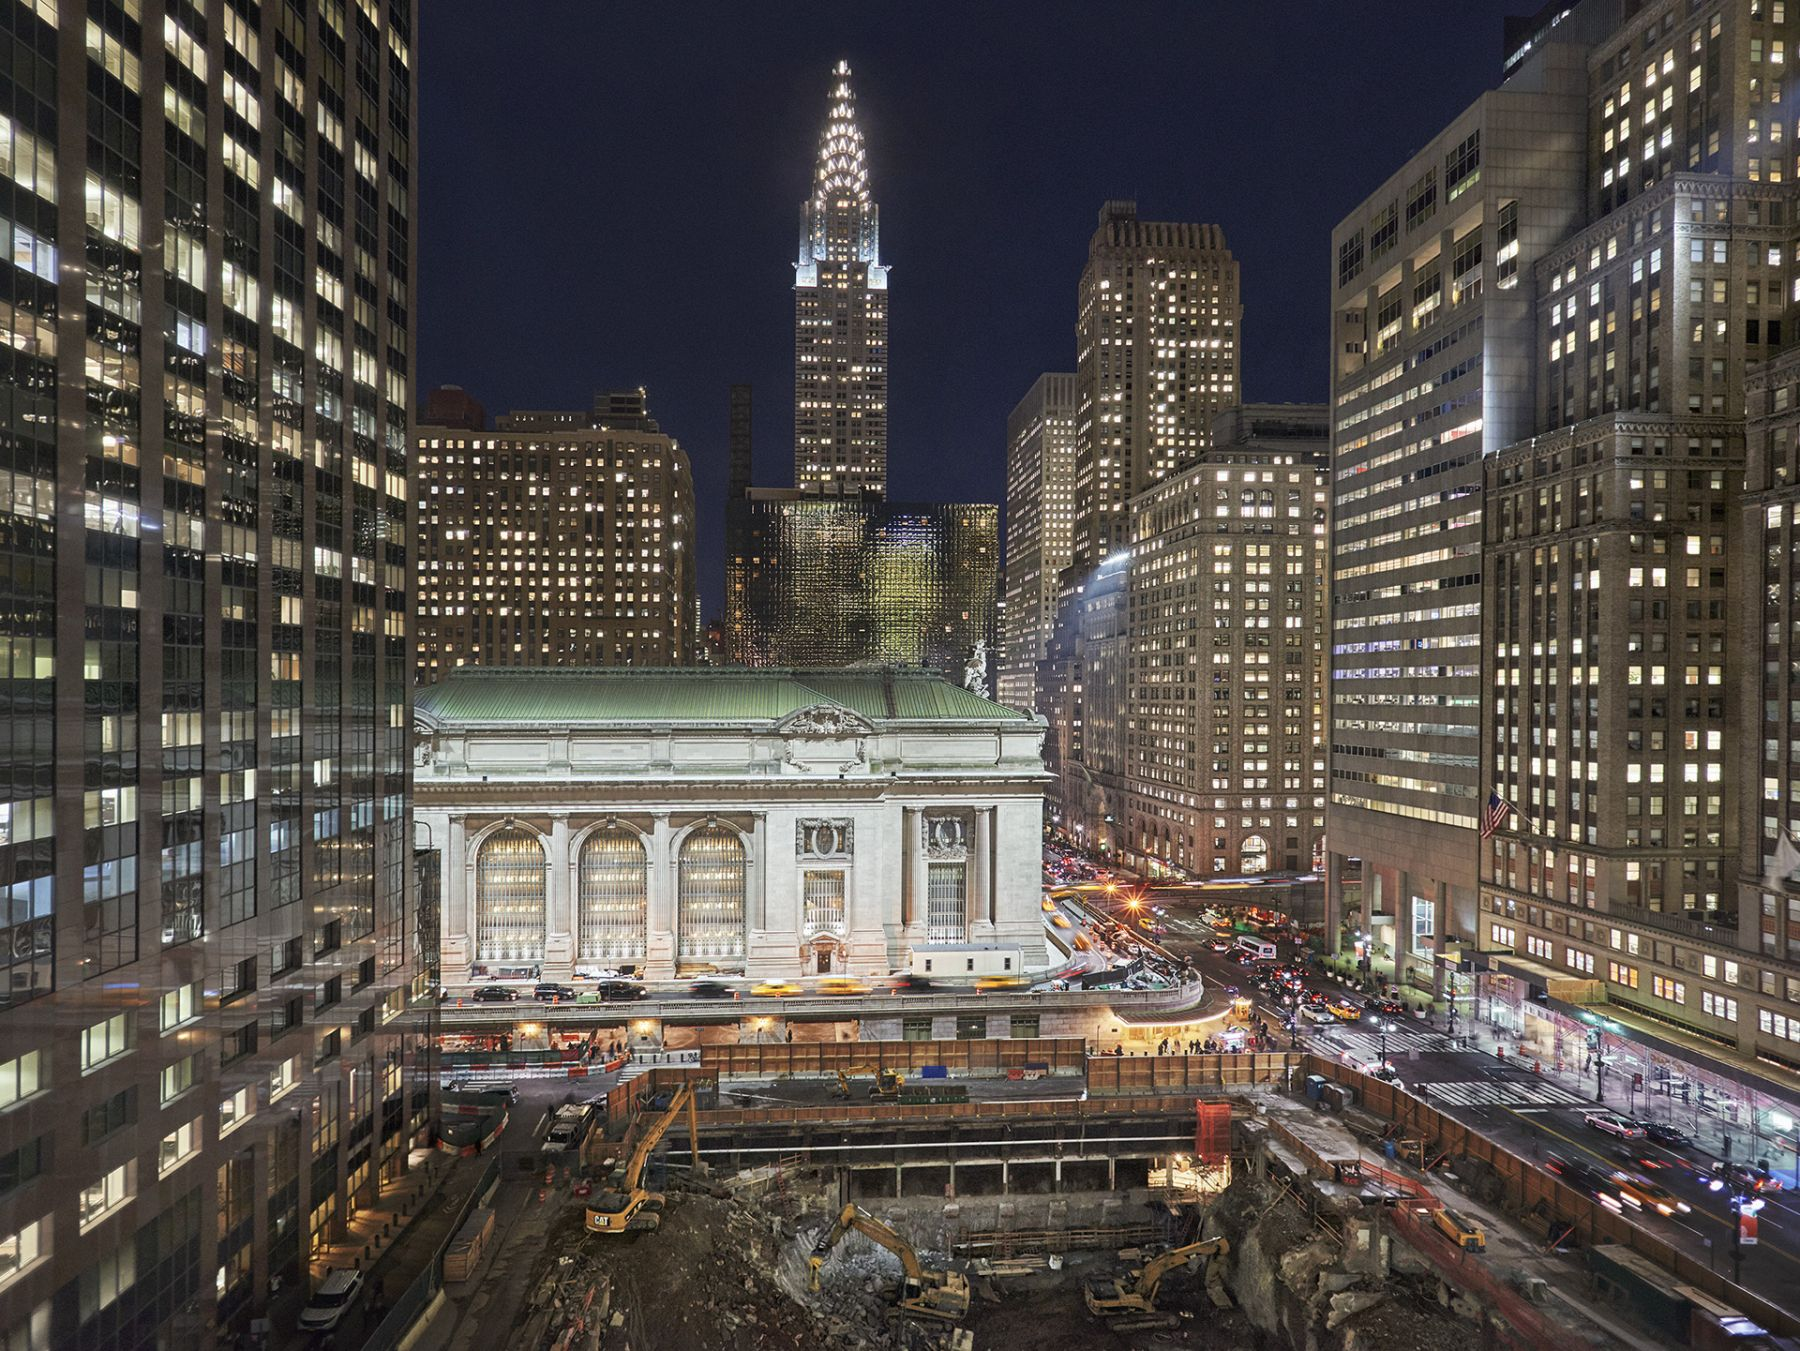 Grand Central Terminal, Western Facade, 2017. Archival pigment print available in: 20 x 24 inches, edition of 15; 30 x 40 inches, edition 15; and 40 x 50 inches, edition of 5.